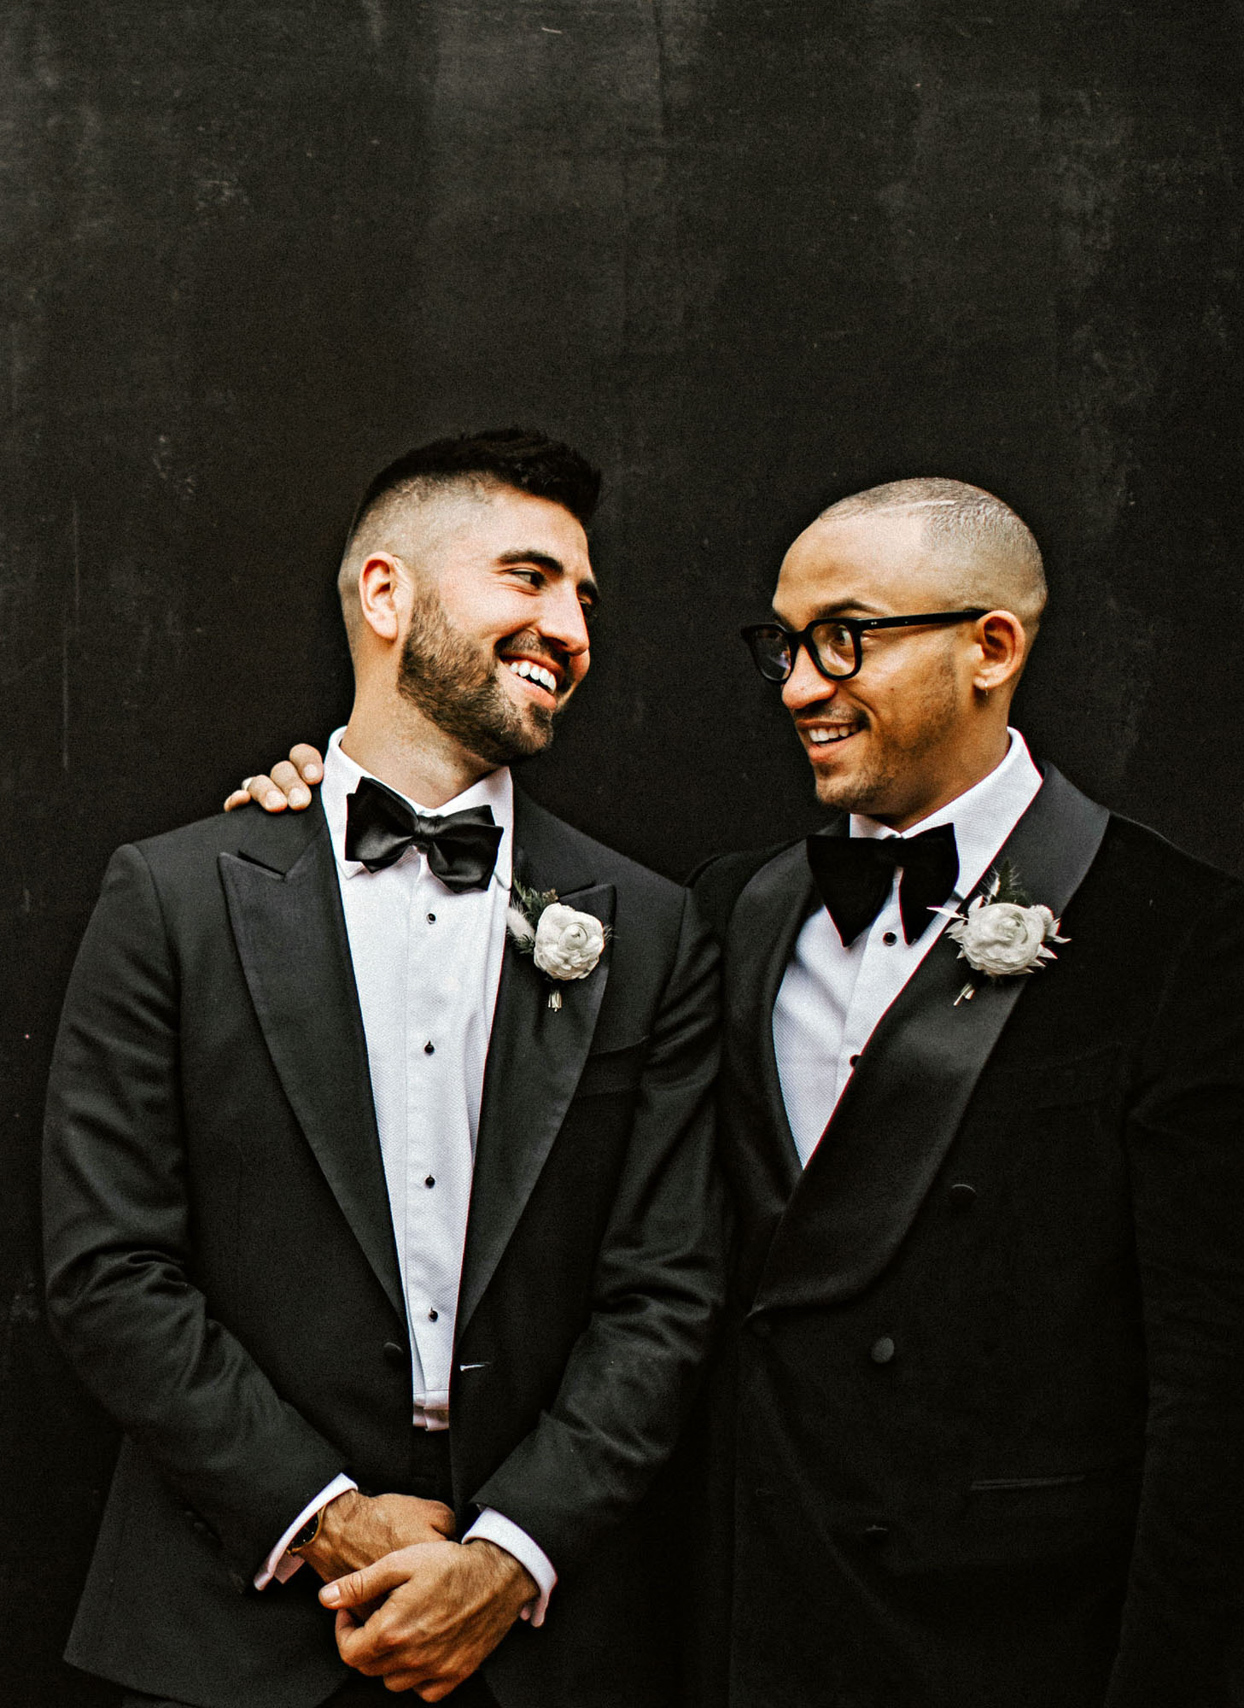 grooms in black suits smiling at each other for portrait